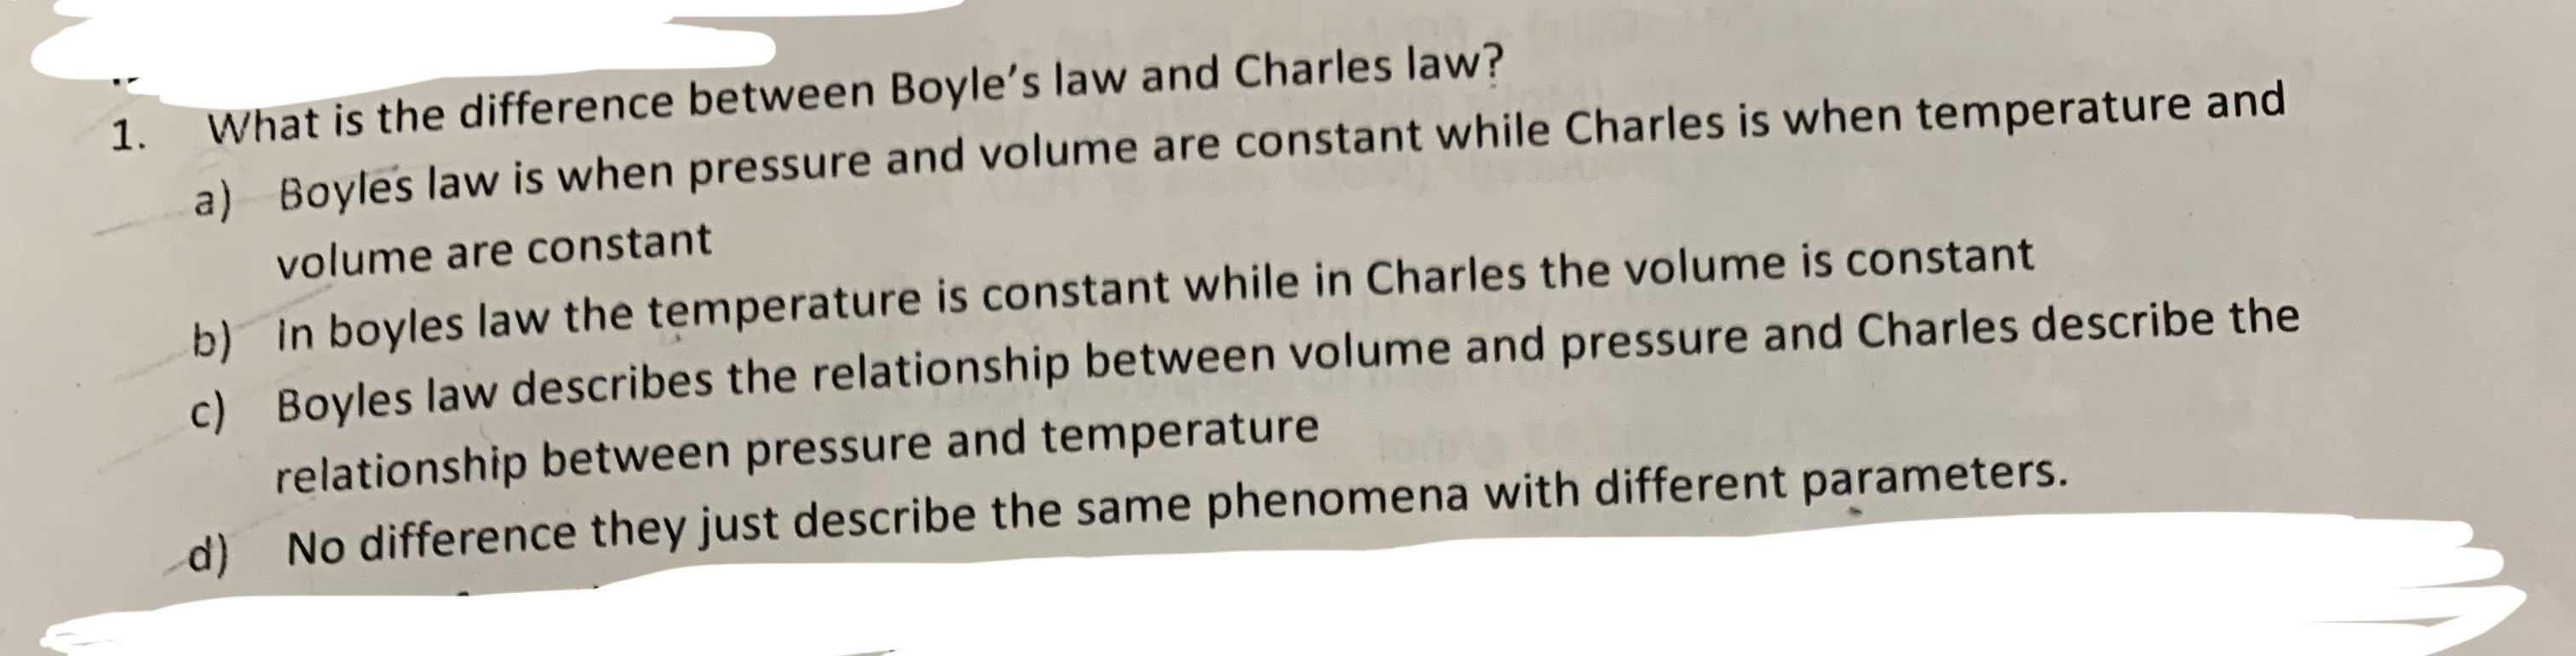 What is the difference between Boyle's law and Charles law? 1. Boyles law is when pressure and volume are constant while Charles is when temperature and a) volume are constant b) In boyles law the temperature is constant while in Charles the volume is constant c) Boyles law describes the relationship between volume and pressure and Charles describe the relationship between pressure and temperature No difference they just describe the same phenomena with different parameters. d)